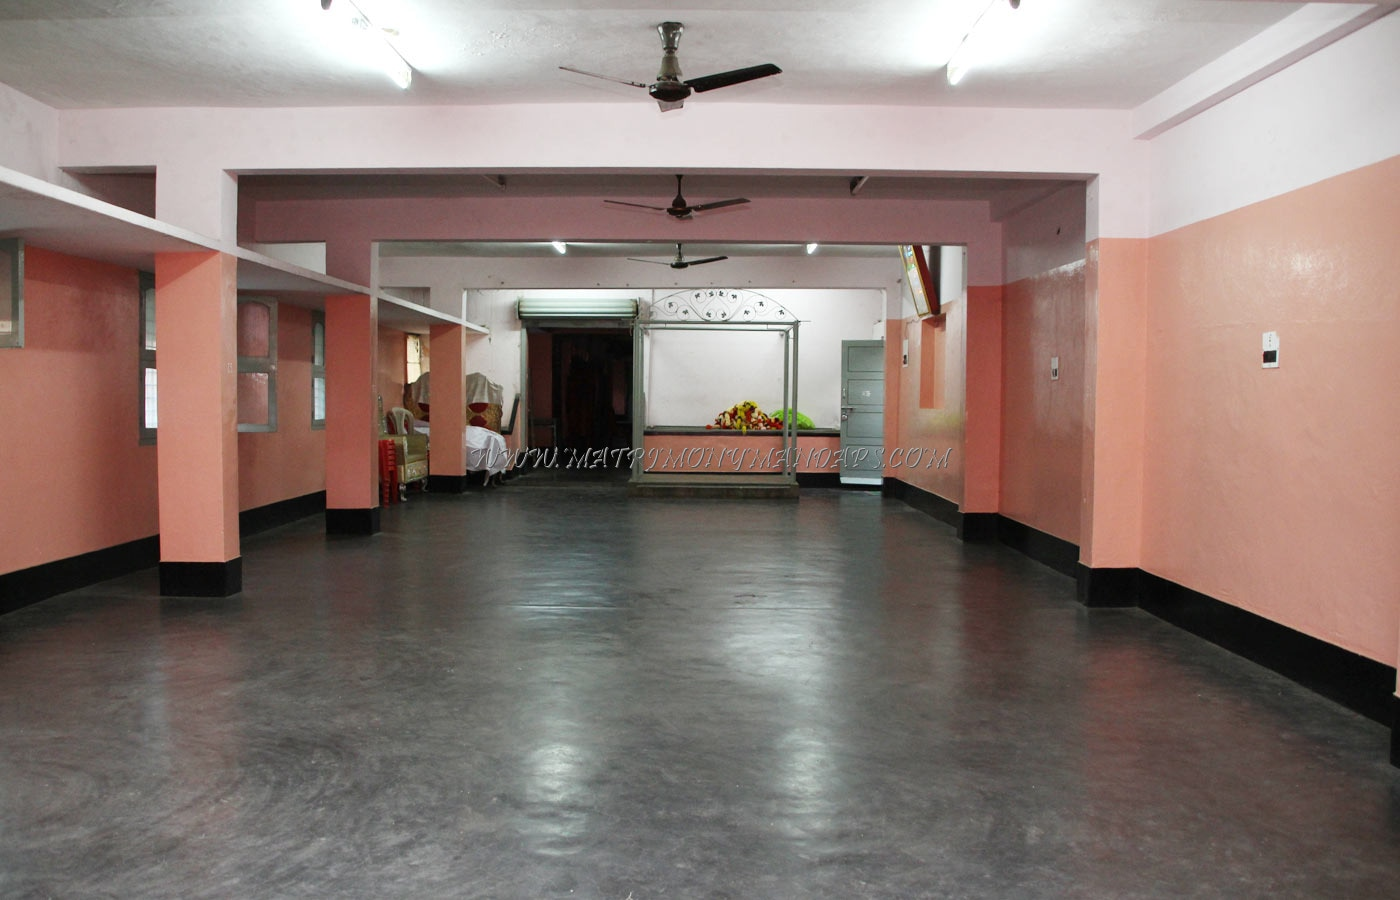 Find the availability of the Sri Padmavathi Mini Hall in Banashankari, Bangalore and avail special offers